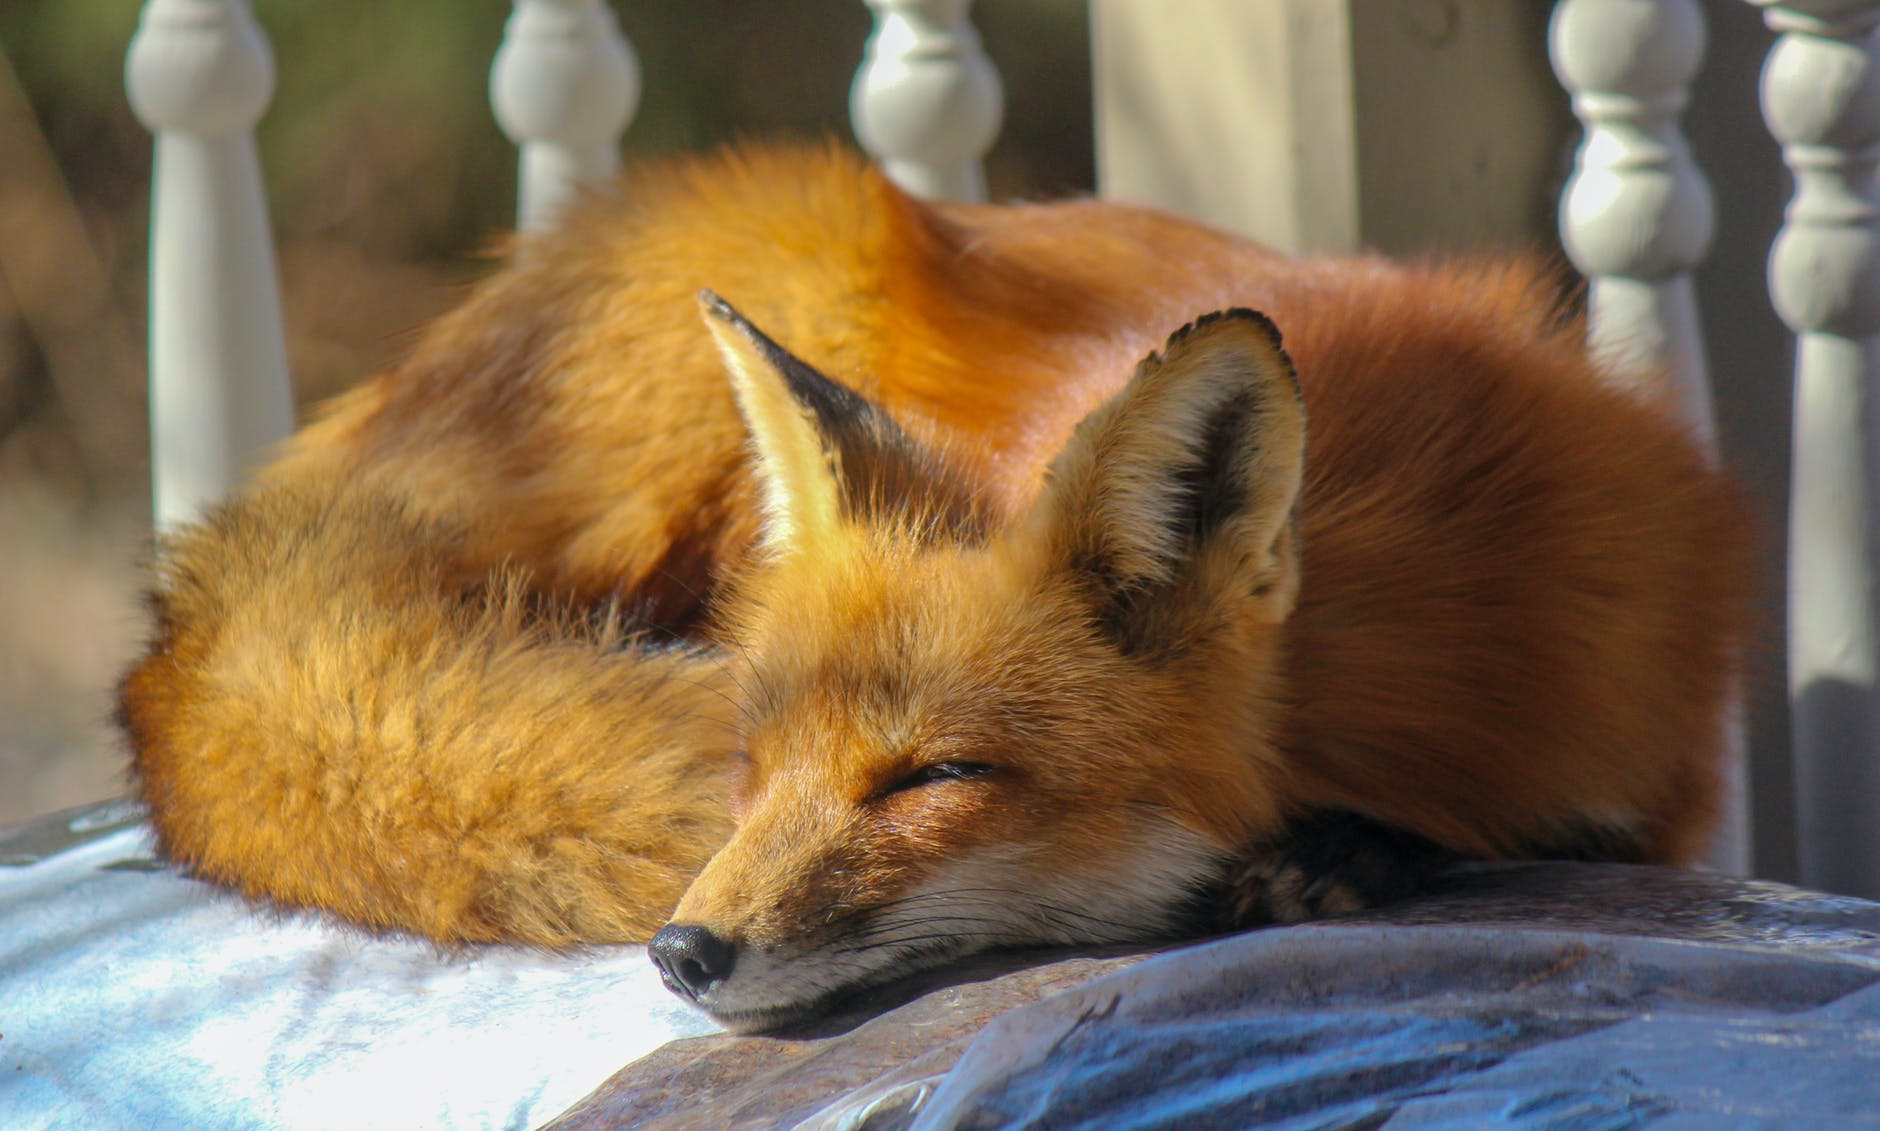 How to stop foxes from coming into your garden